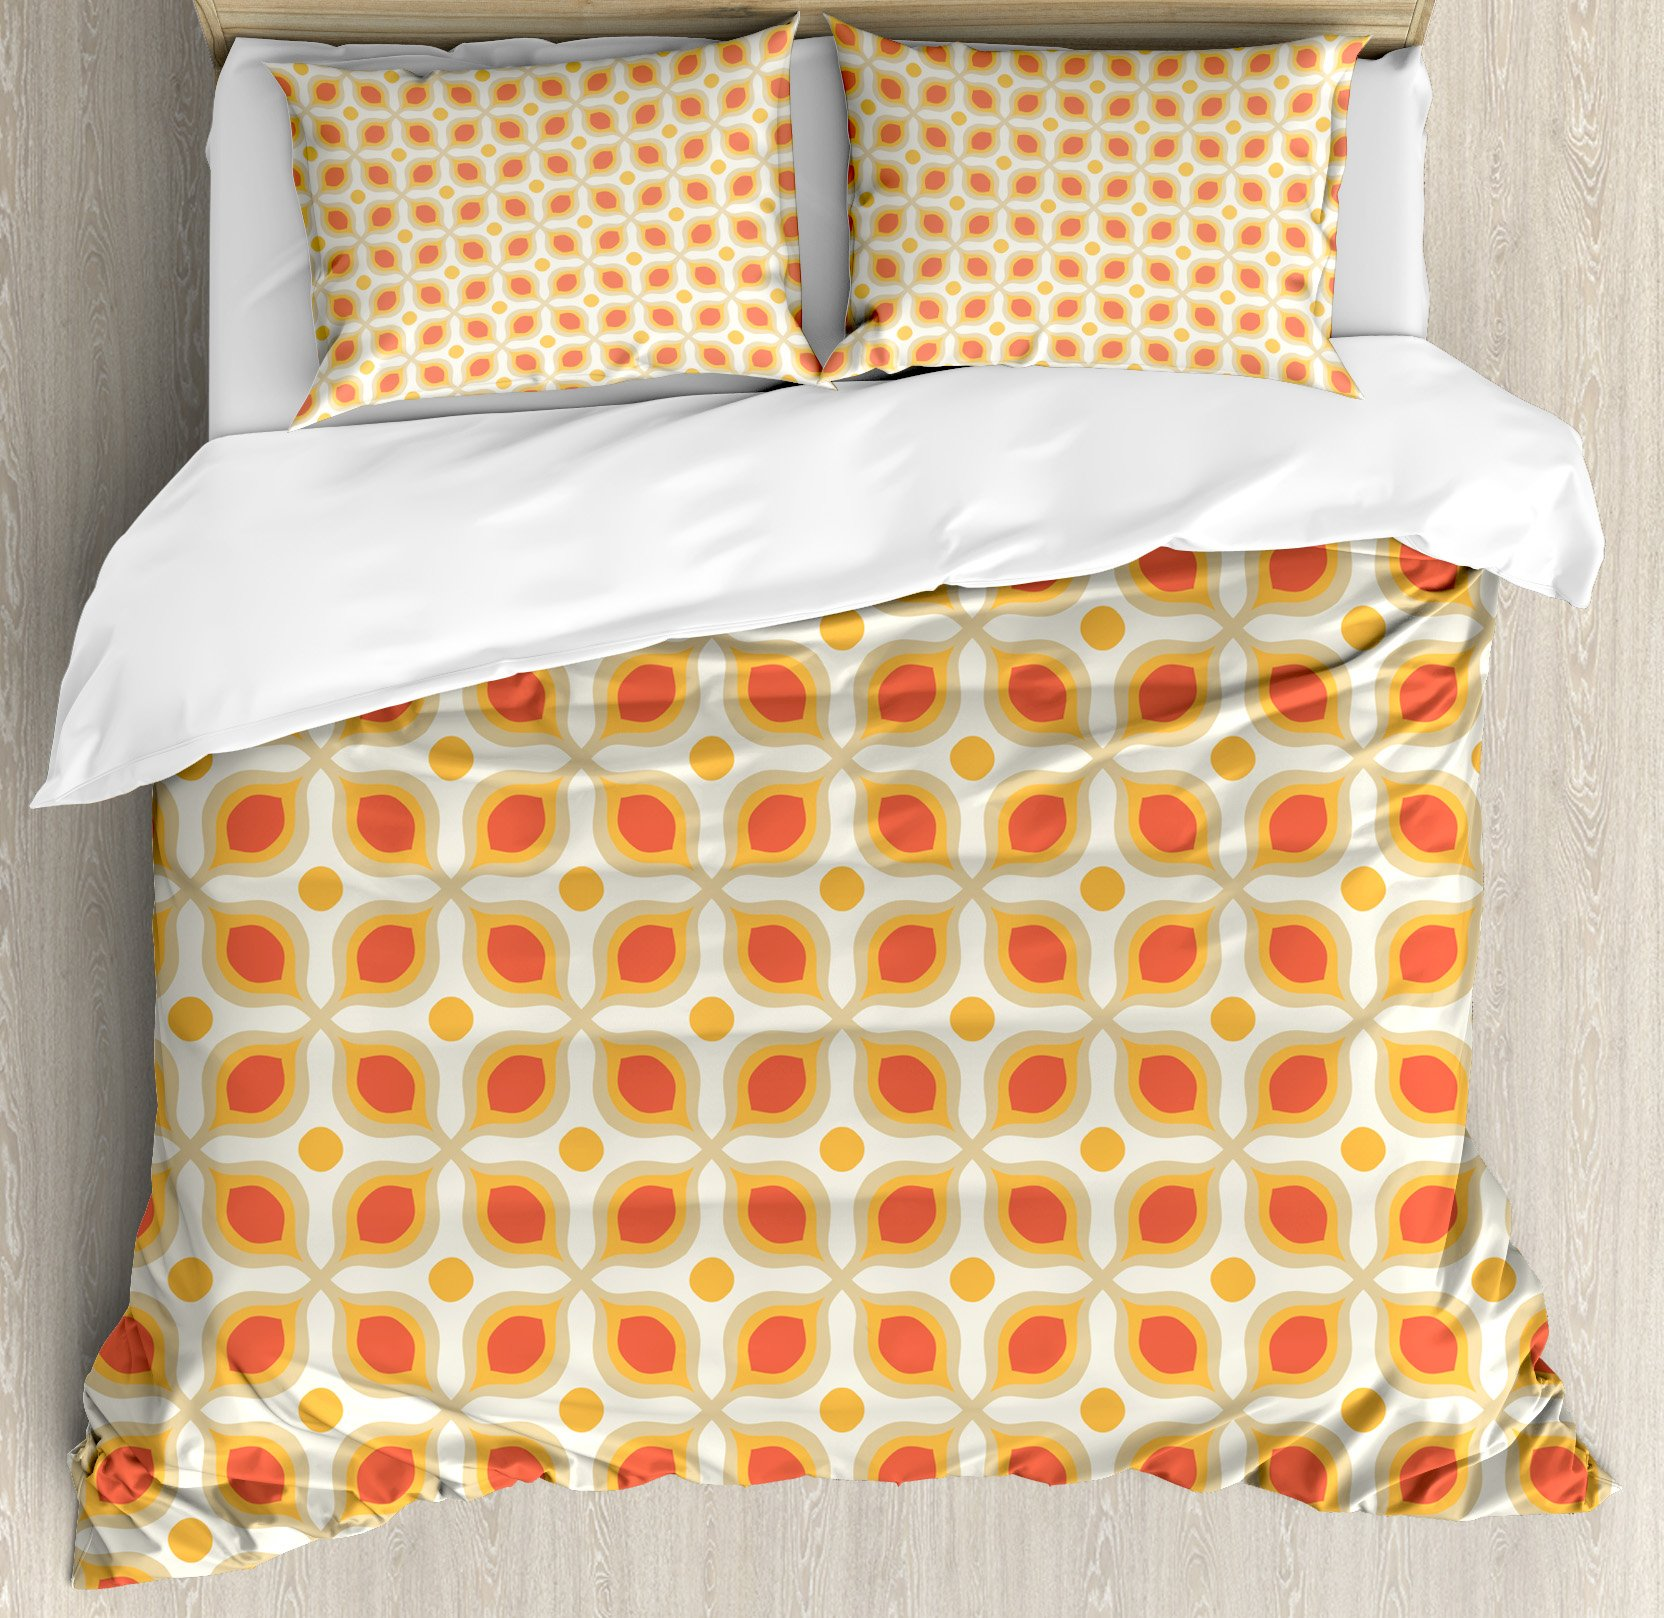 Ambesonne Geometric Duvet Cover Set, Linked Bold Geometric Shapes 70s Vintage Style Minimalist Pattern Boho Home Decor, 3 Piece Bedding Set with Pillow Shams, Queen/Full, Orange Cream